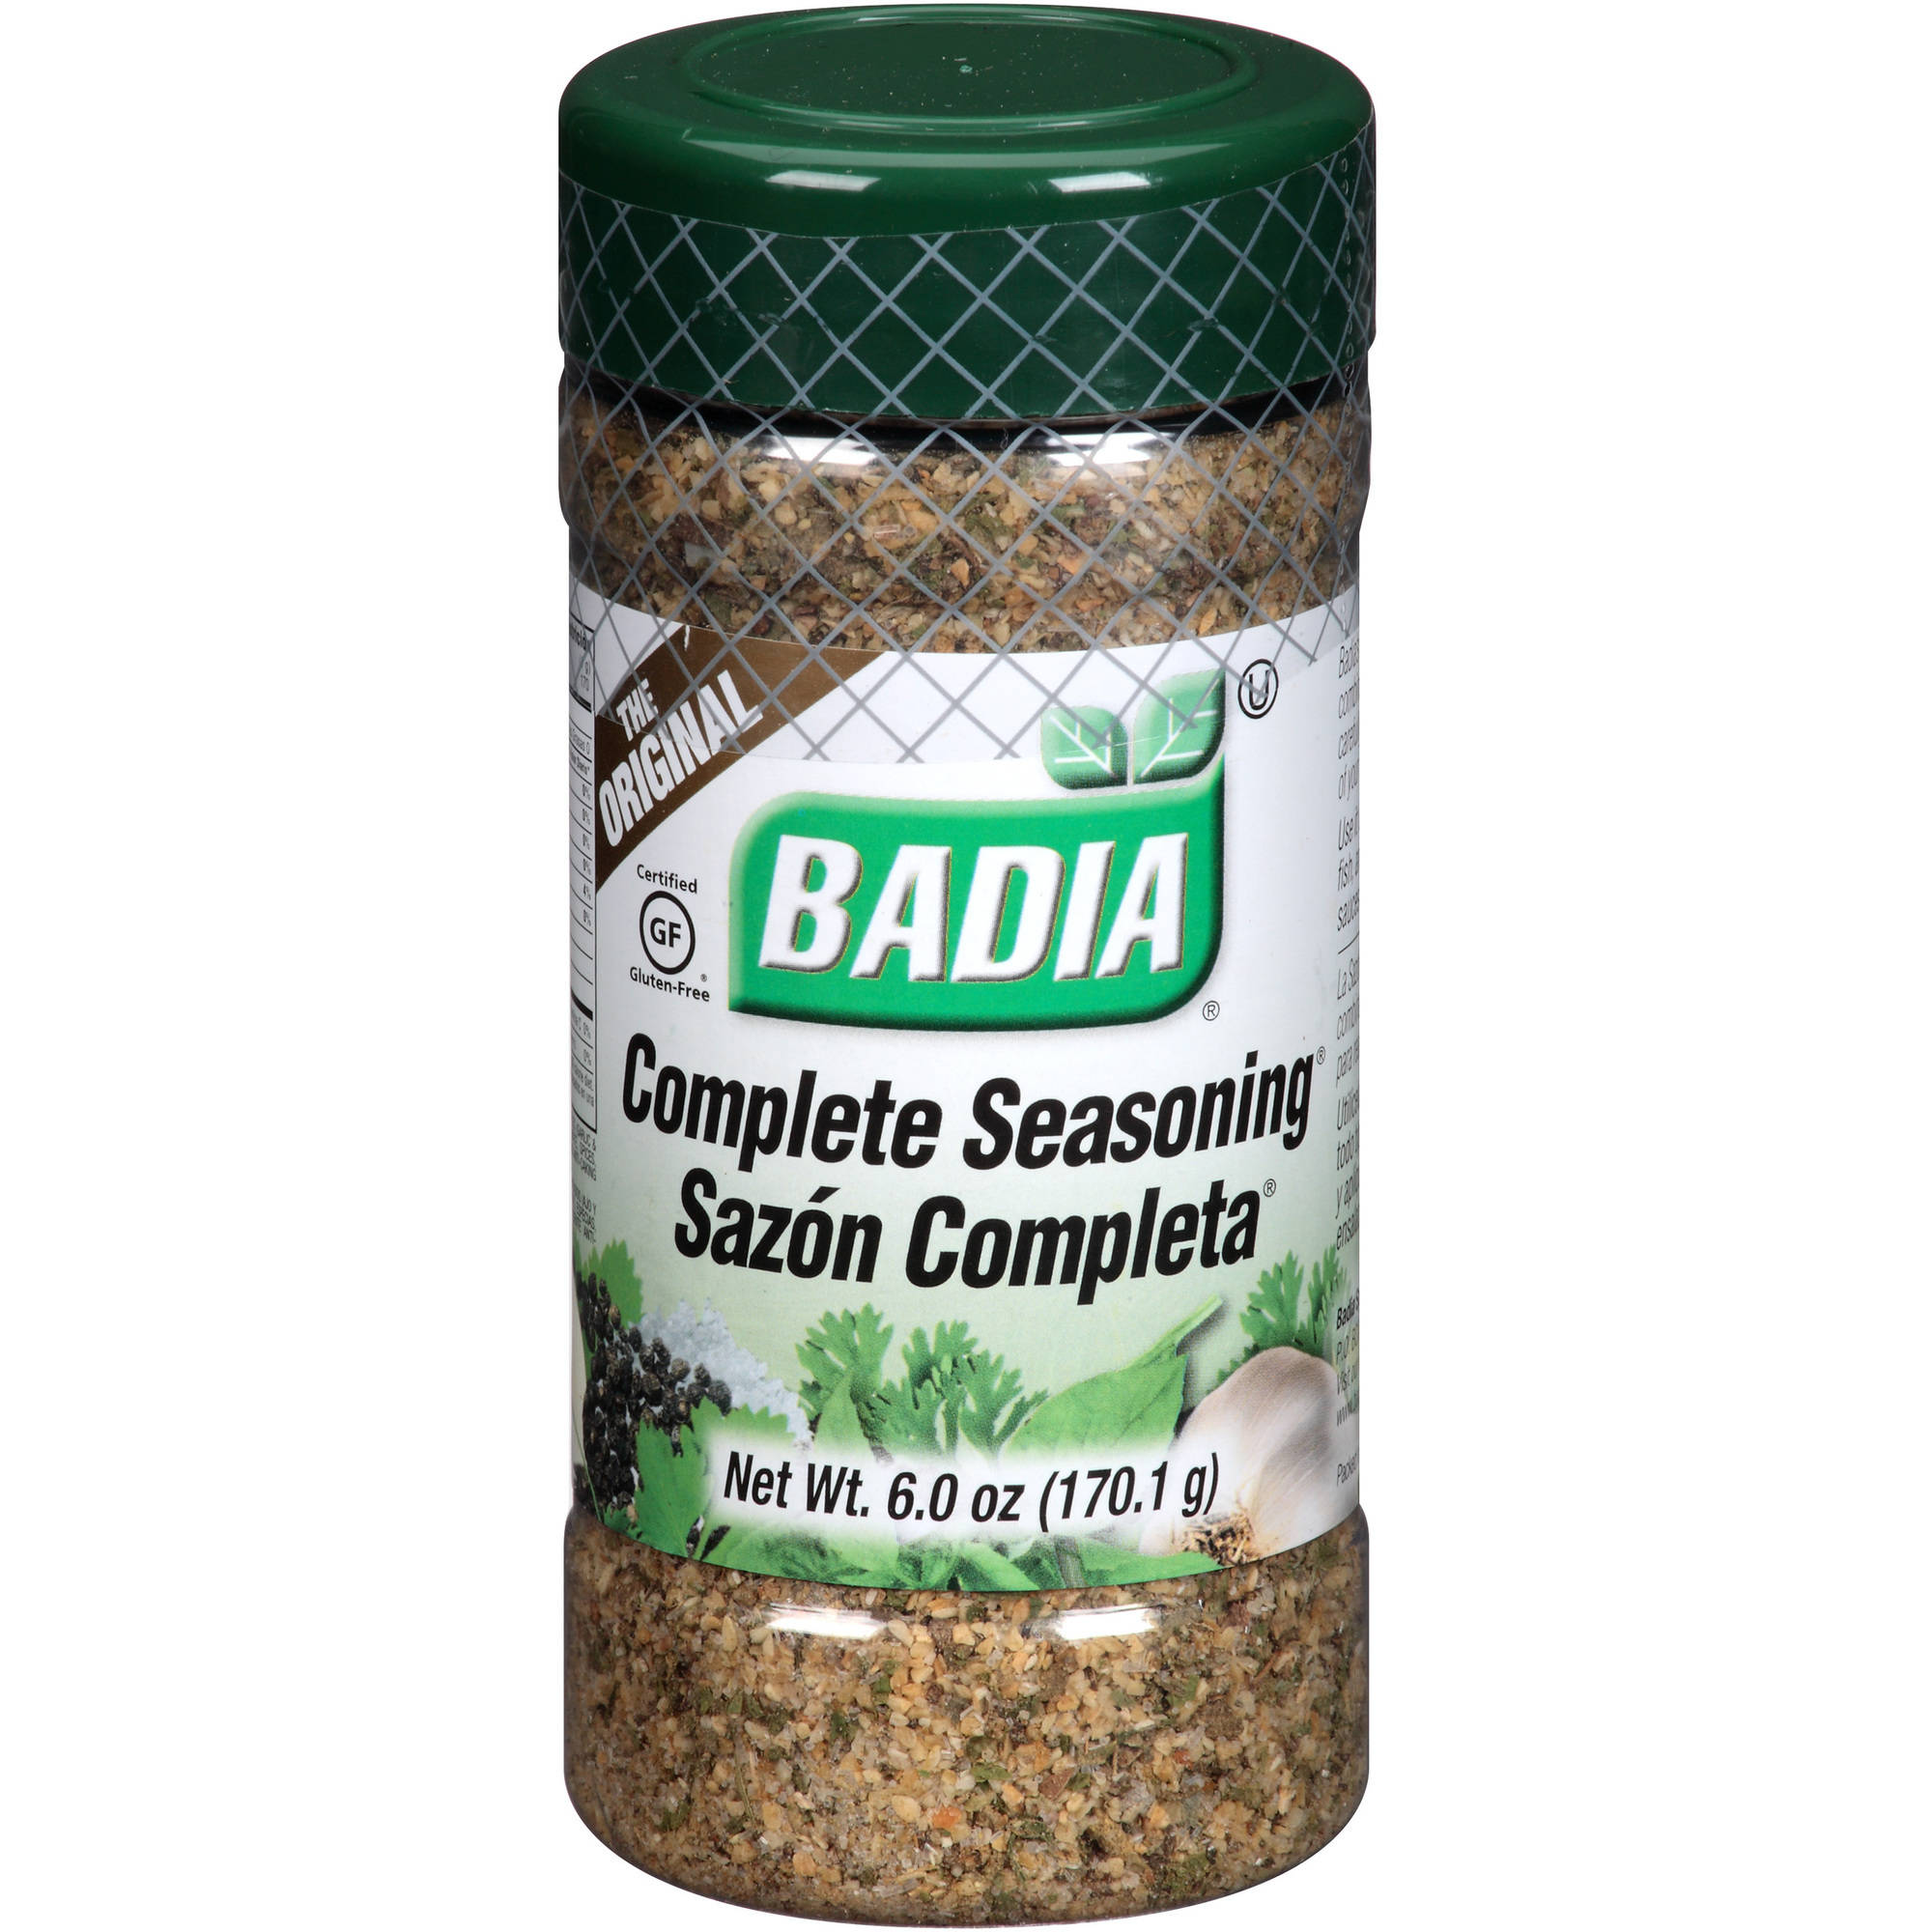 Badia The Original Complete Seasoning, 6 oz